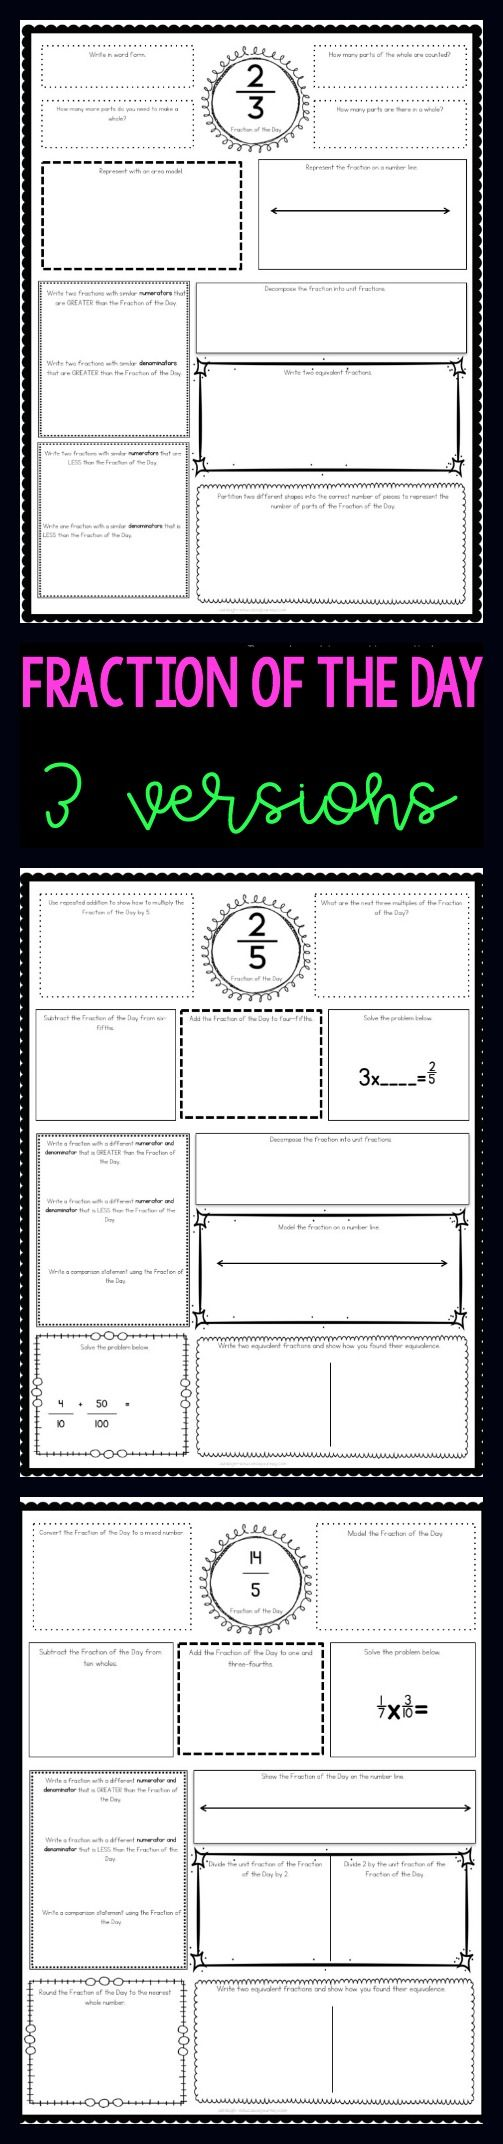 Give students practice working with fractions and developing a fraction number sense with a Fraction of the Day. Reviews equivalent fractions, comparing fractions, fractions on a number line, adding fractions, subtracting fractions, mixed numbers, improper fractions, multiplying fractions, and more!